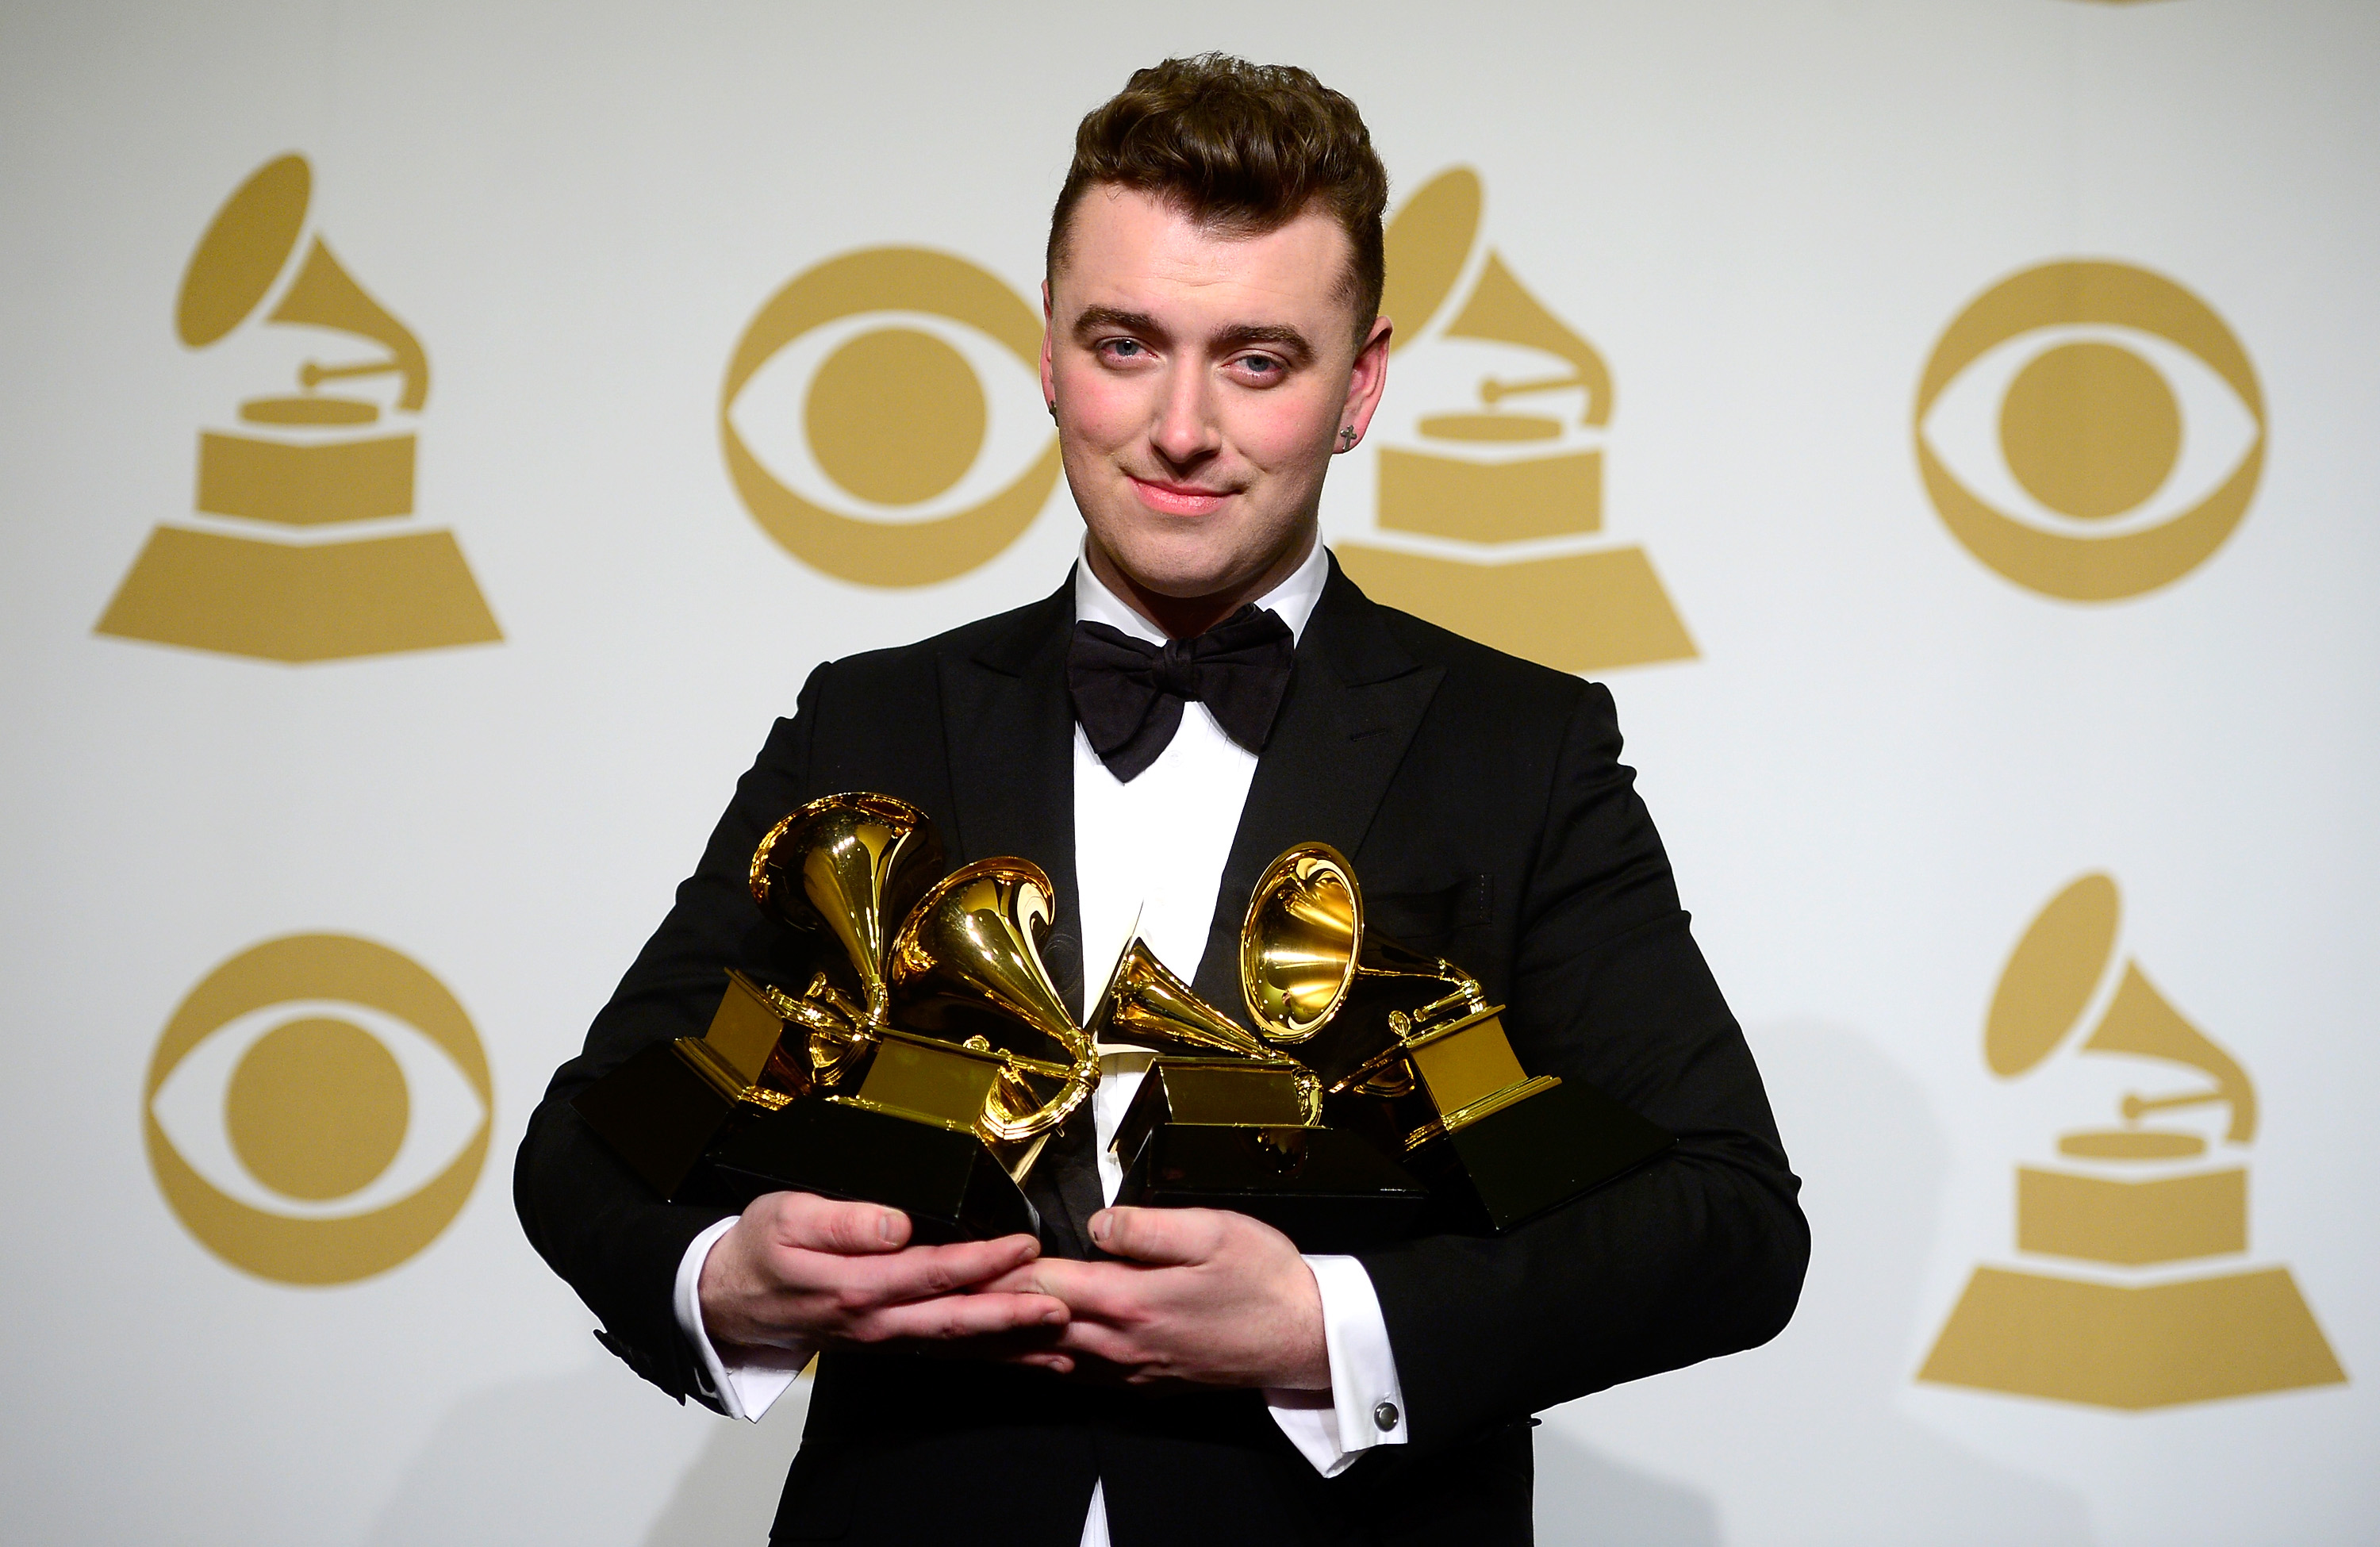 poses in the press room during The 57th Annual GRAMMY Awards at the STAPLES Center on February 8, 2015 in Los Angeles, California.